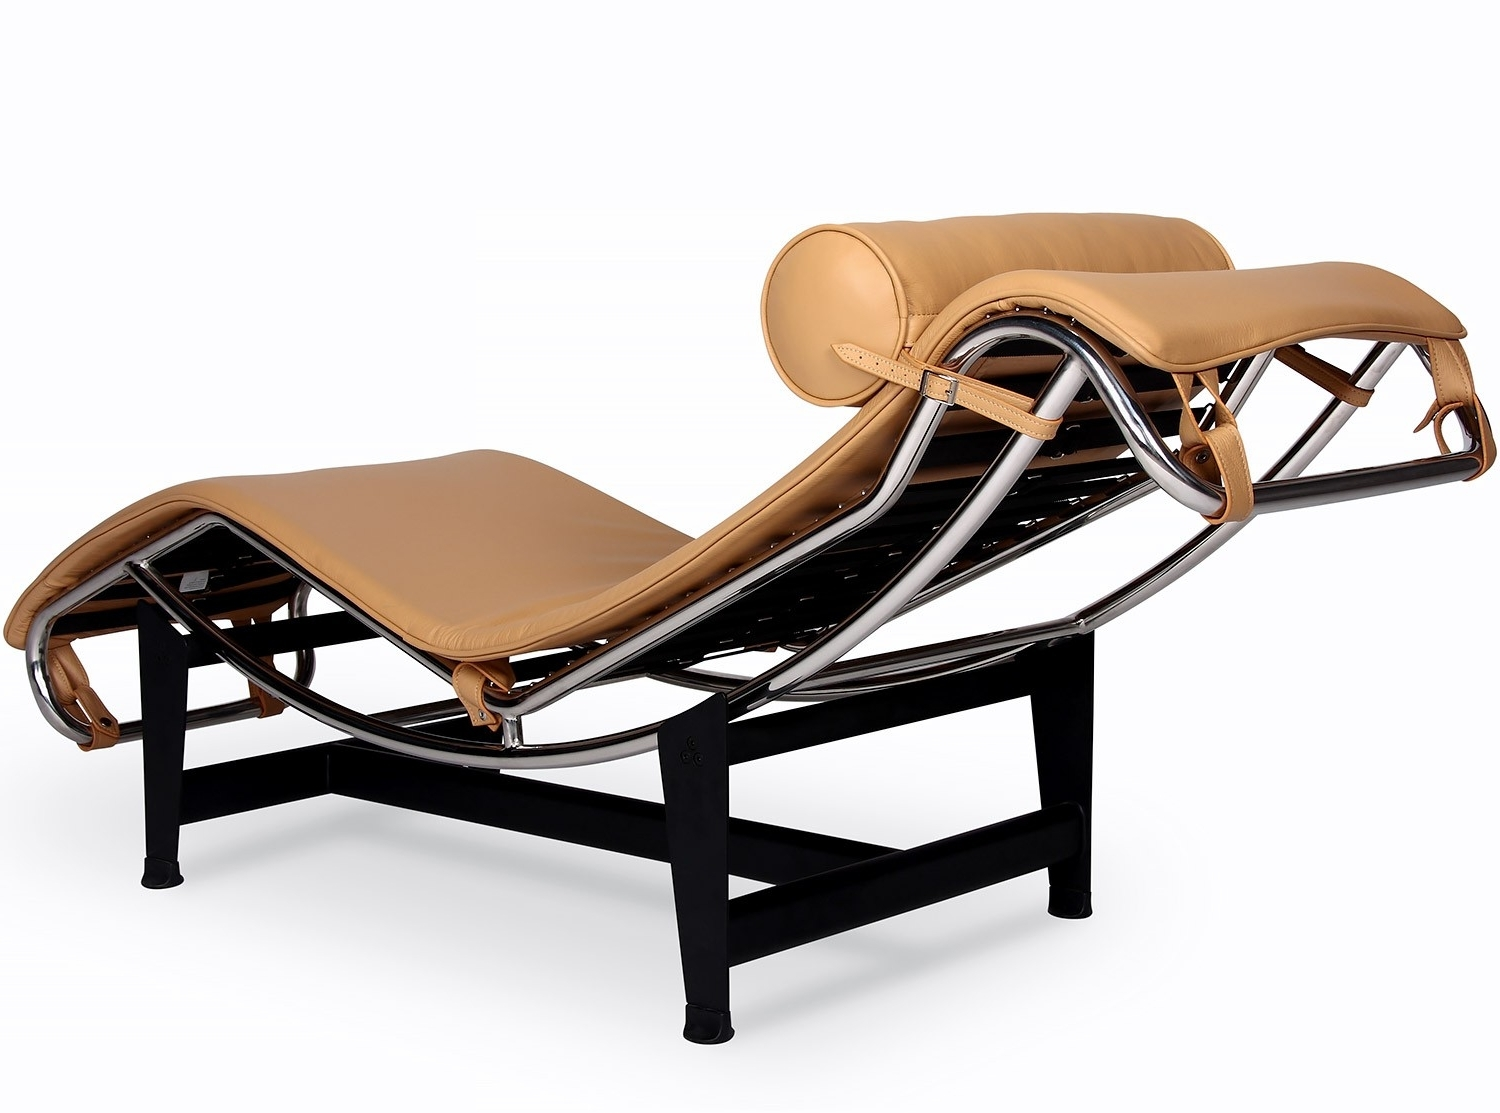 Le Corbusier Lc4 Chaise Longue (Platinum Replica) With Regard To Most Current Le Corbusier Chaise Lounges (View 11 of 15)